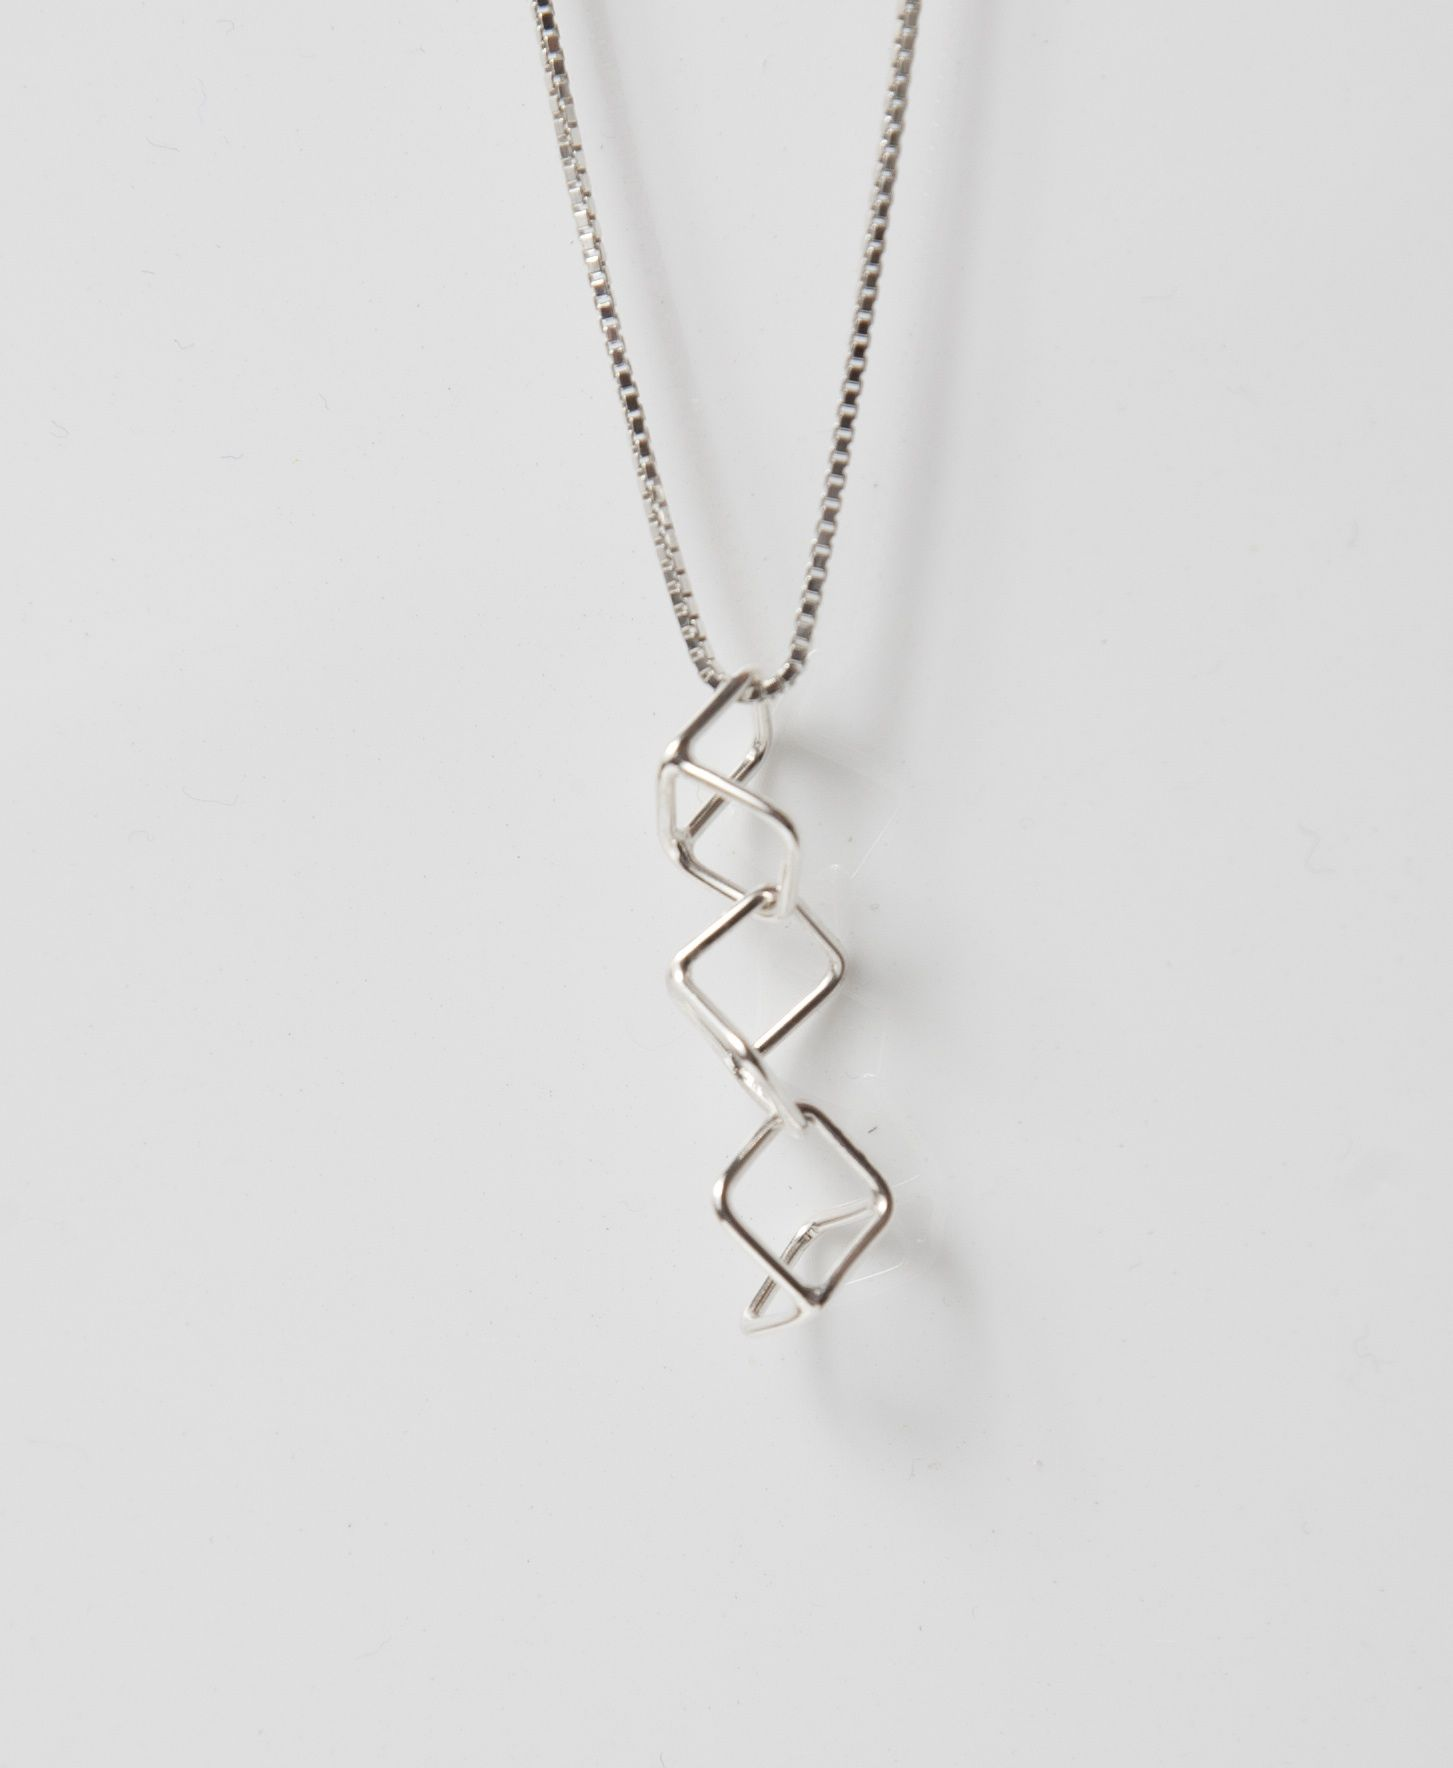 Hand made silver necklace by Frances Stunt available at Franny & Filer jewellery shop in Chorlton - www.frannyandfiler.com - £45